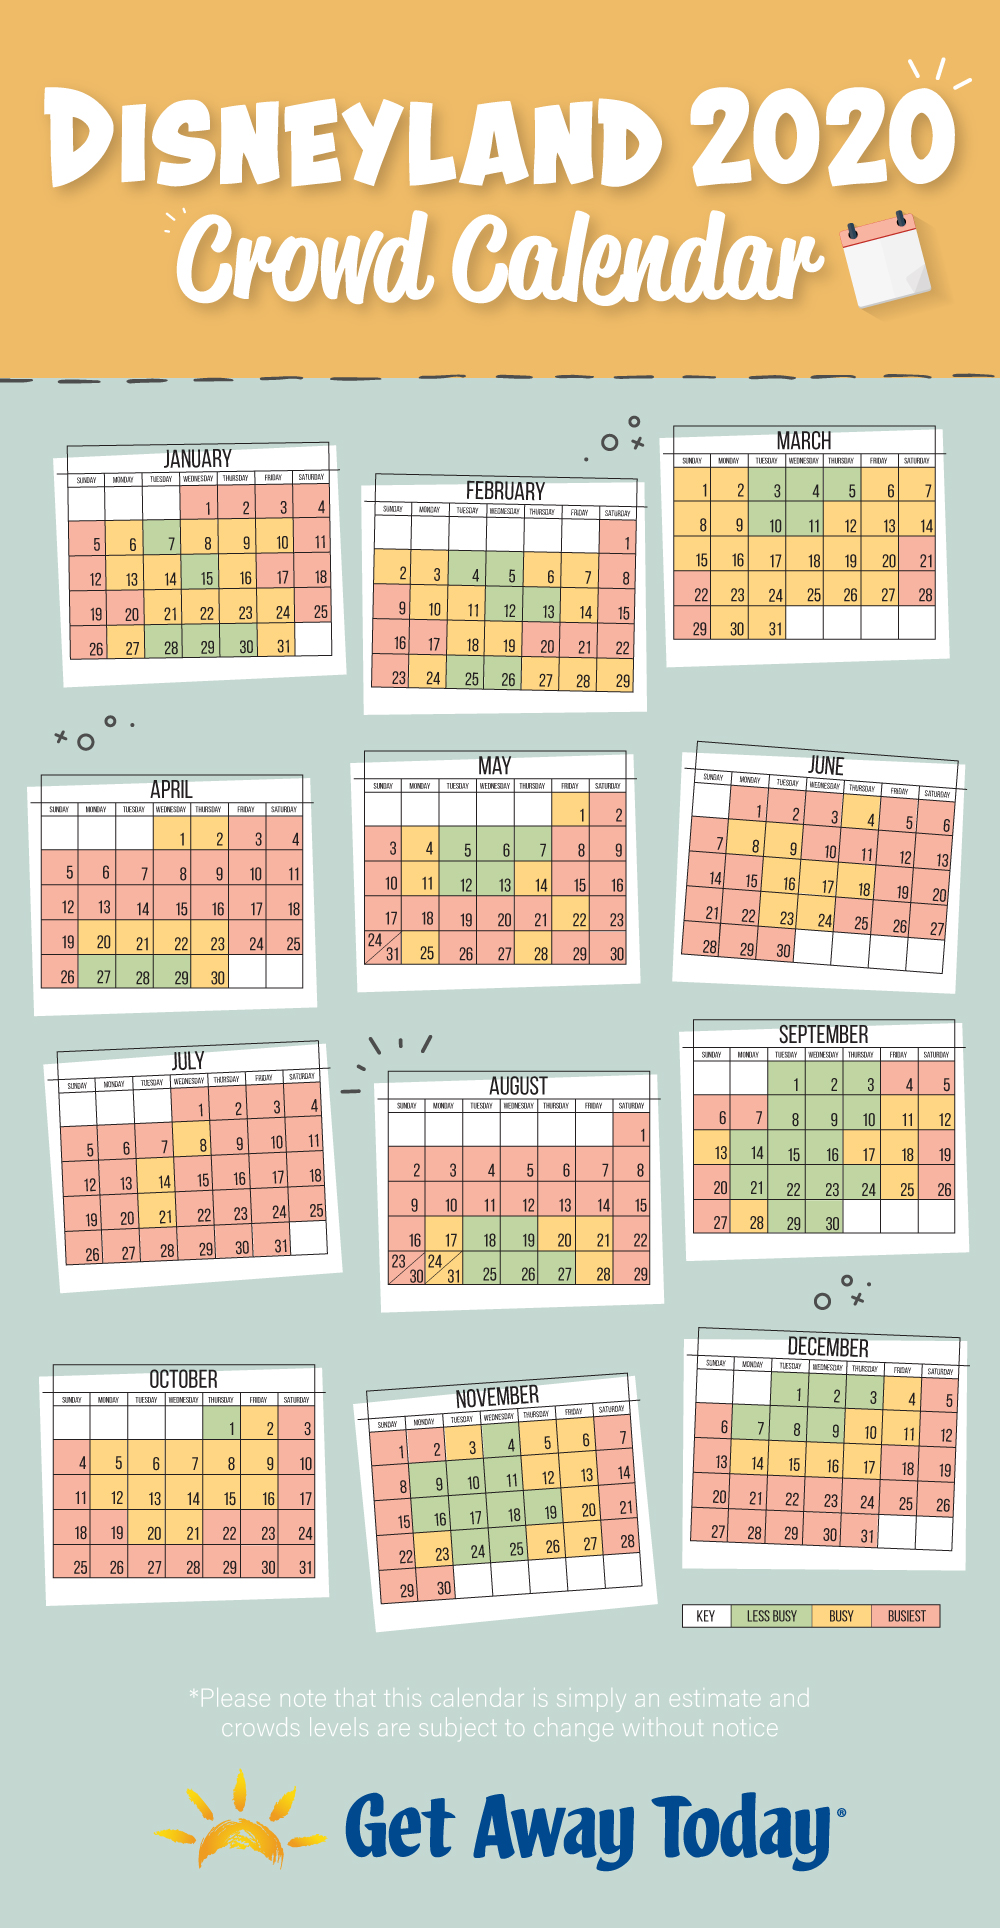 Universal Crowd Calendar 2022.The Best Time To Go To Disneyland